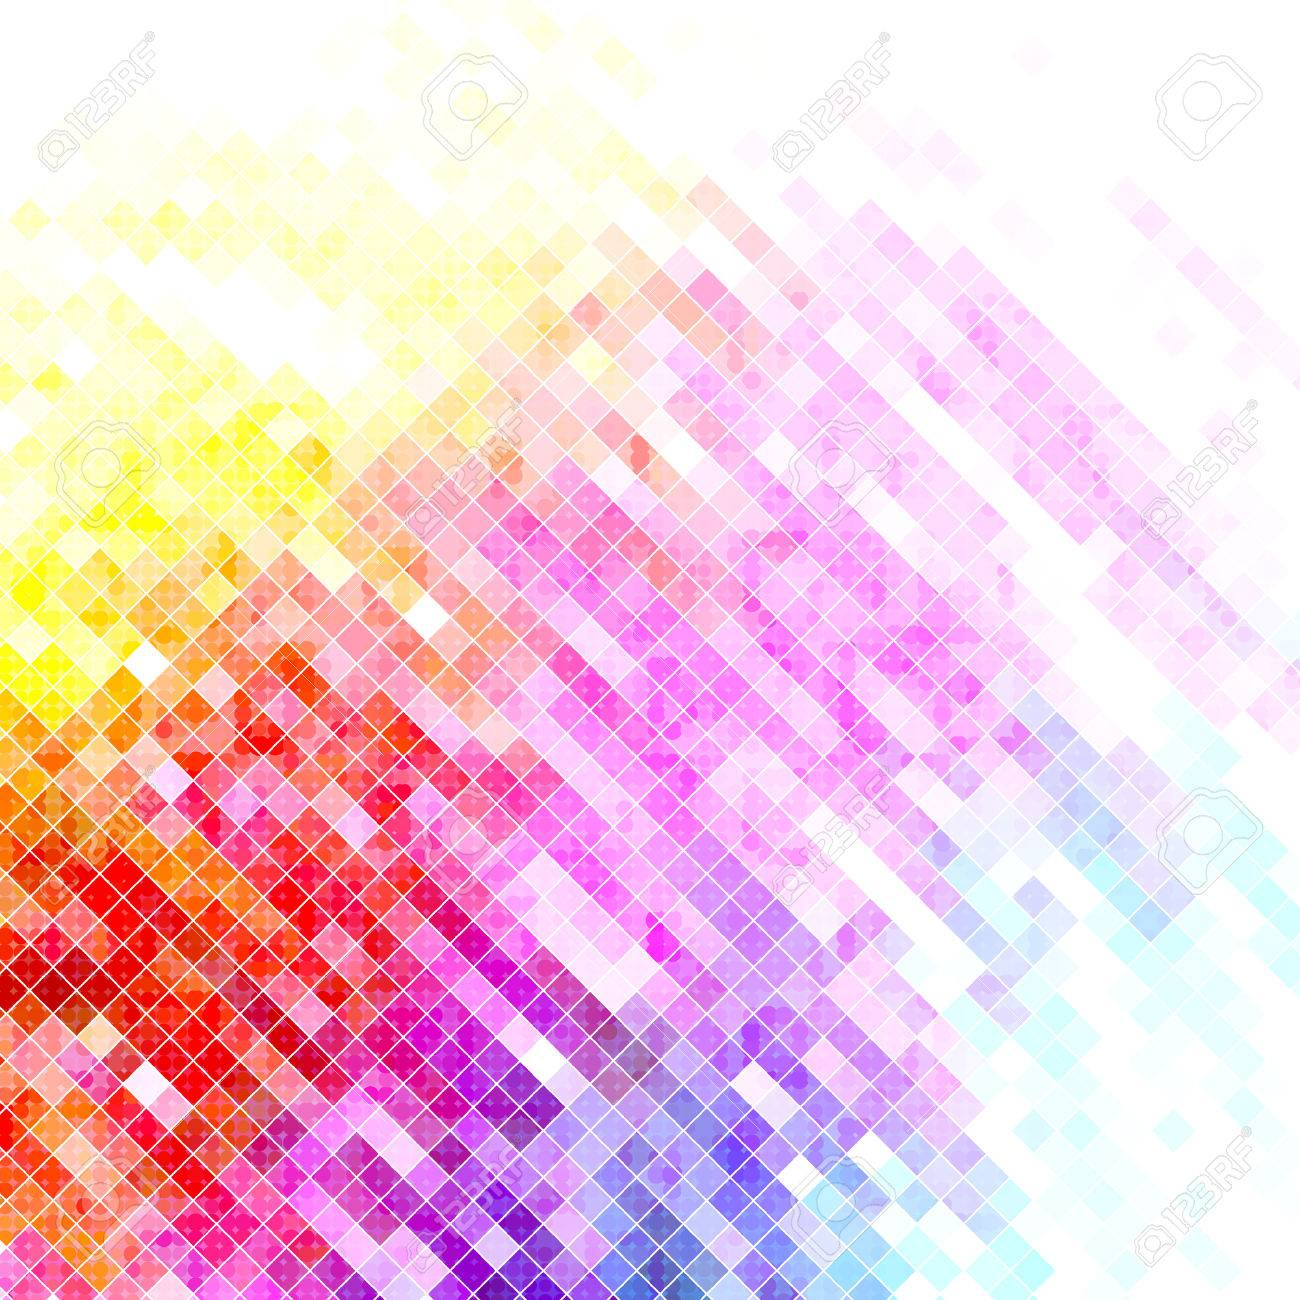 abstract background - 8906693